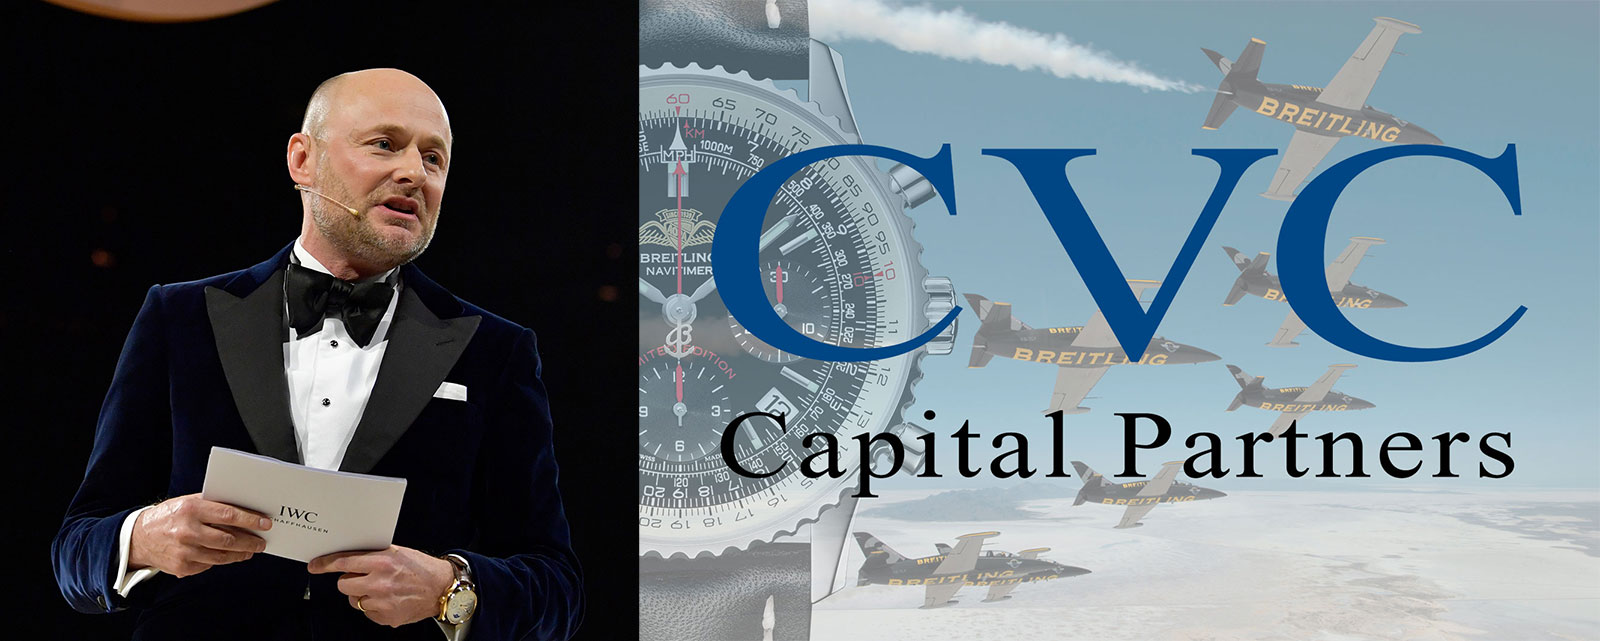 Georges-Kern-Breitling-CVC Capital